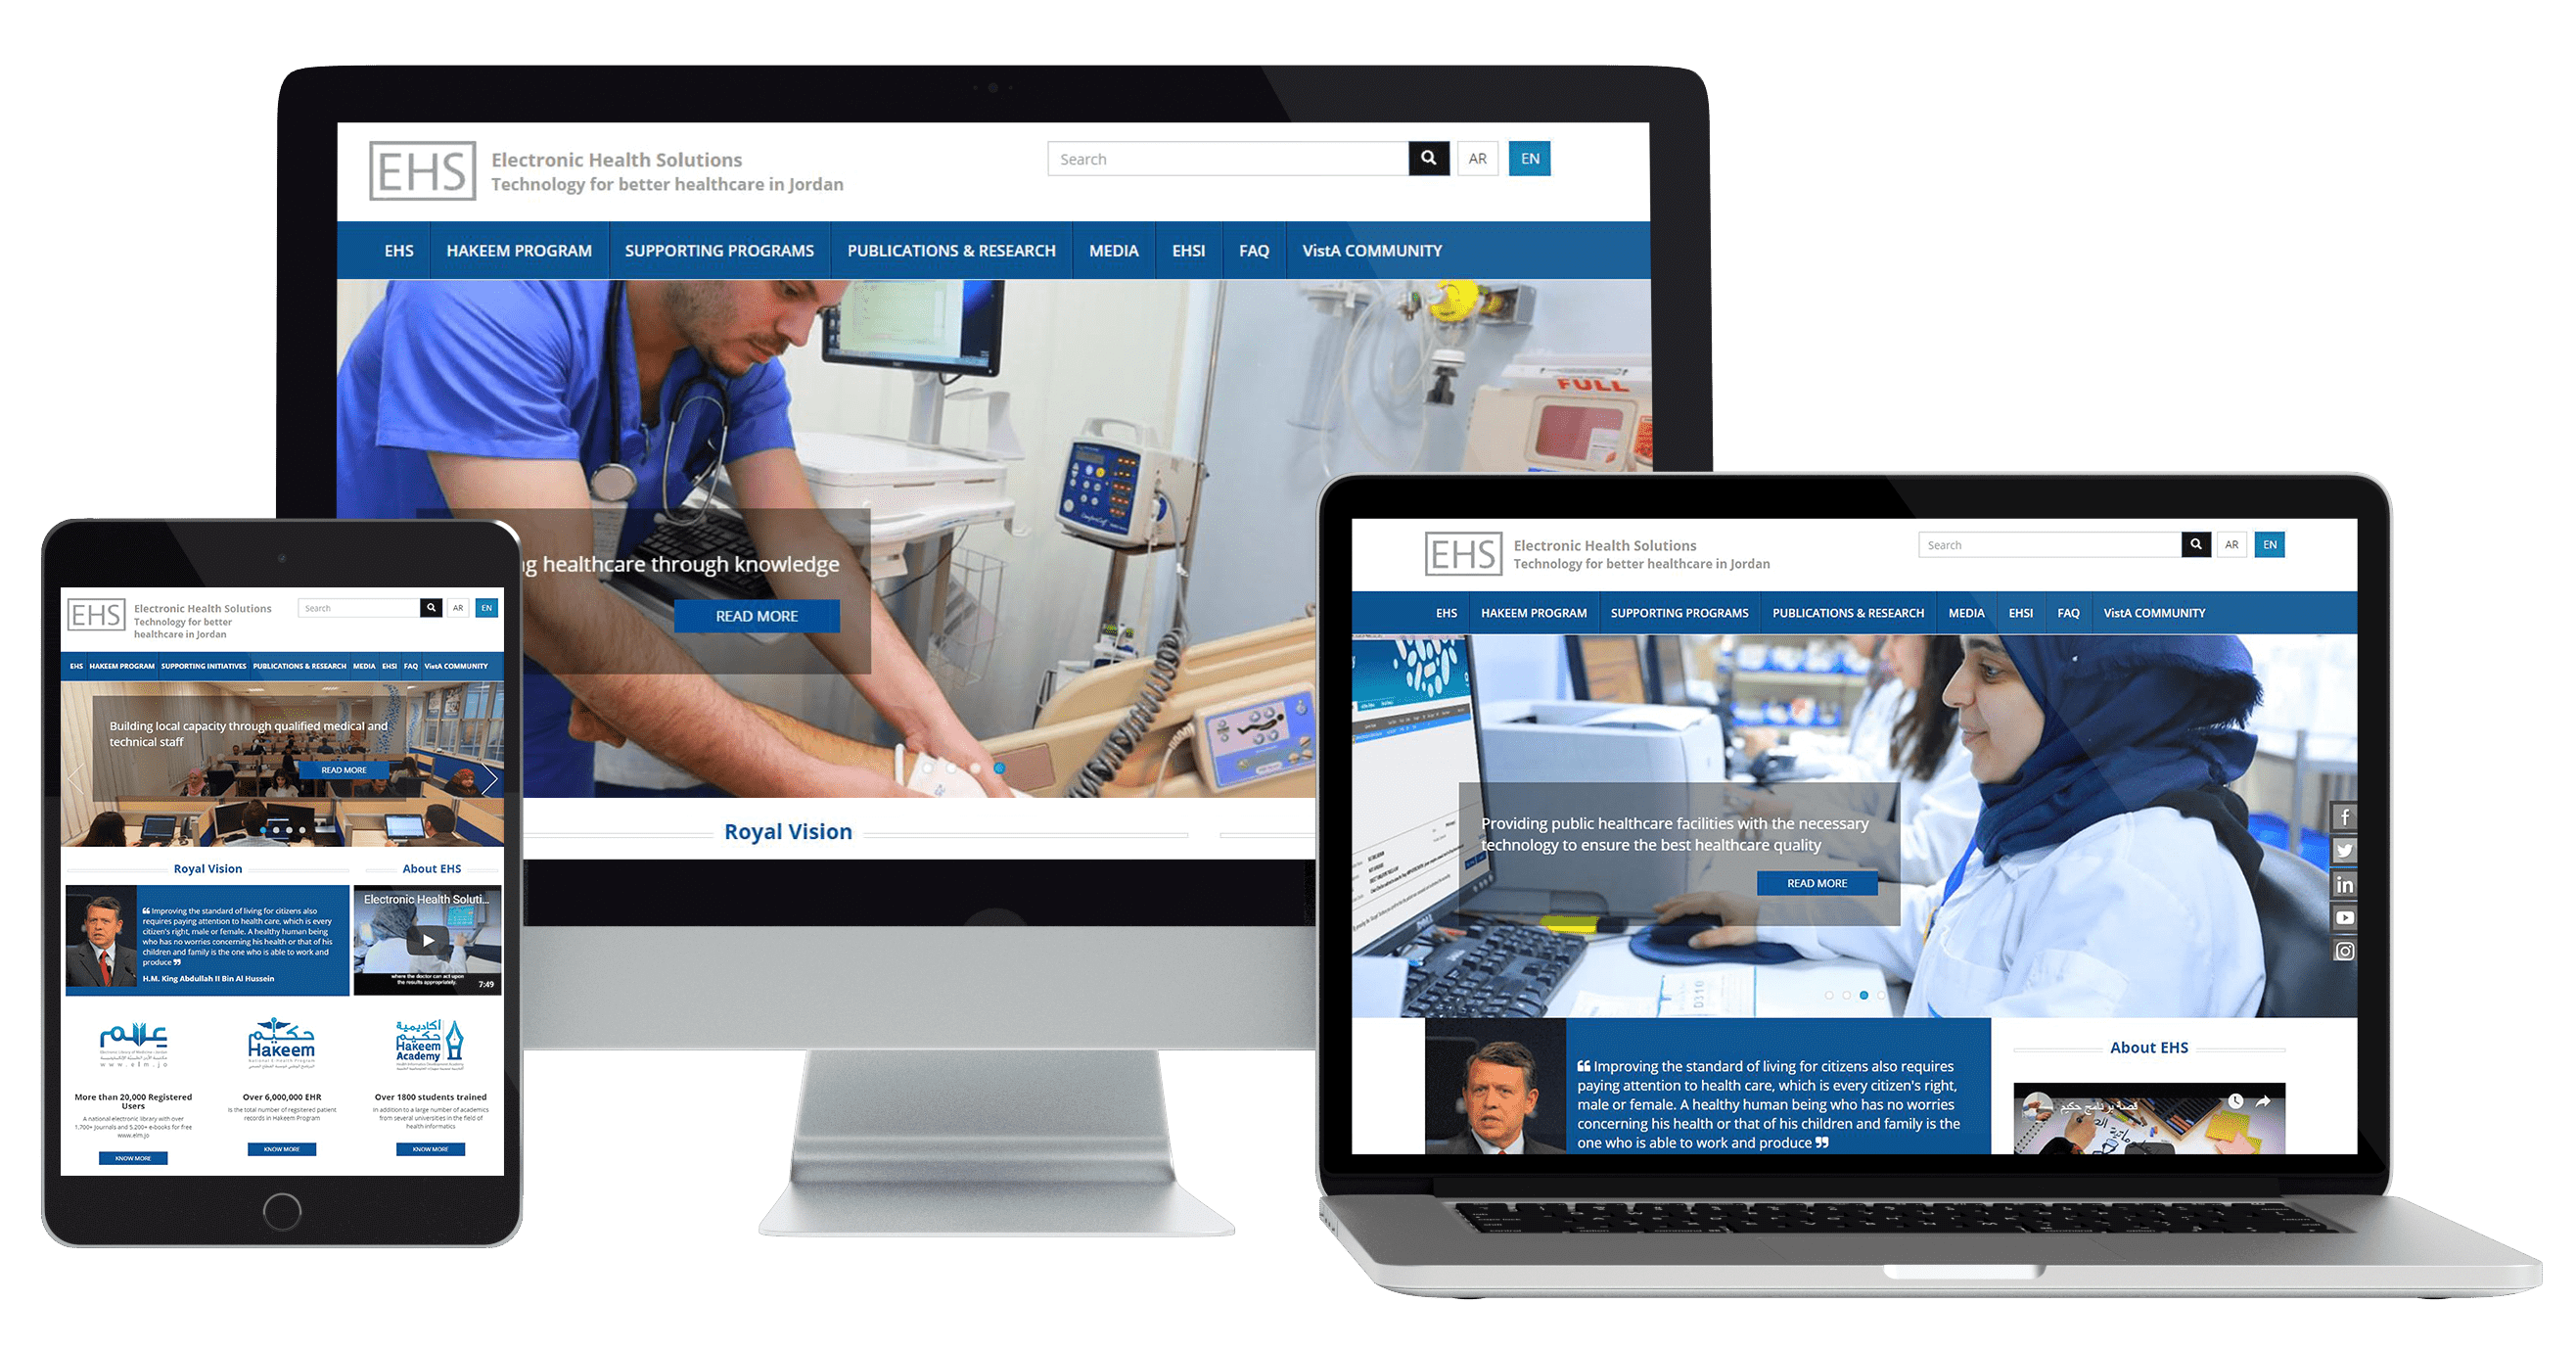 Sprintive Developed the website for Electronic Health solutions